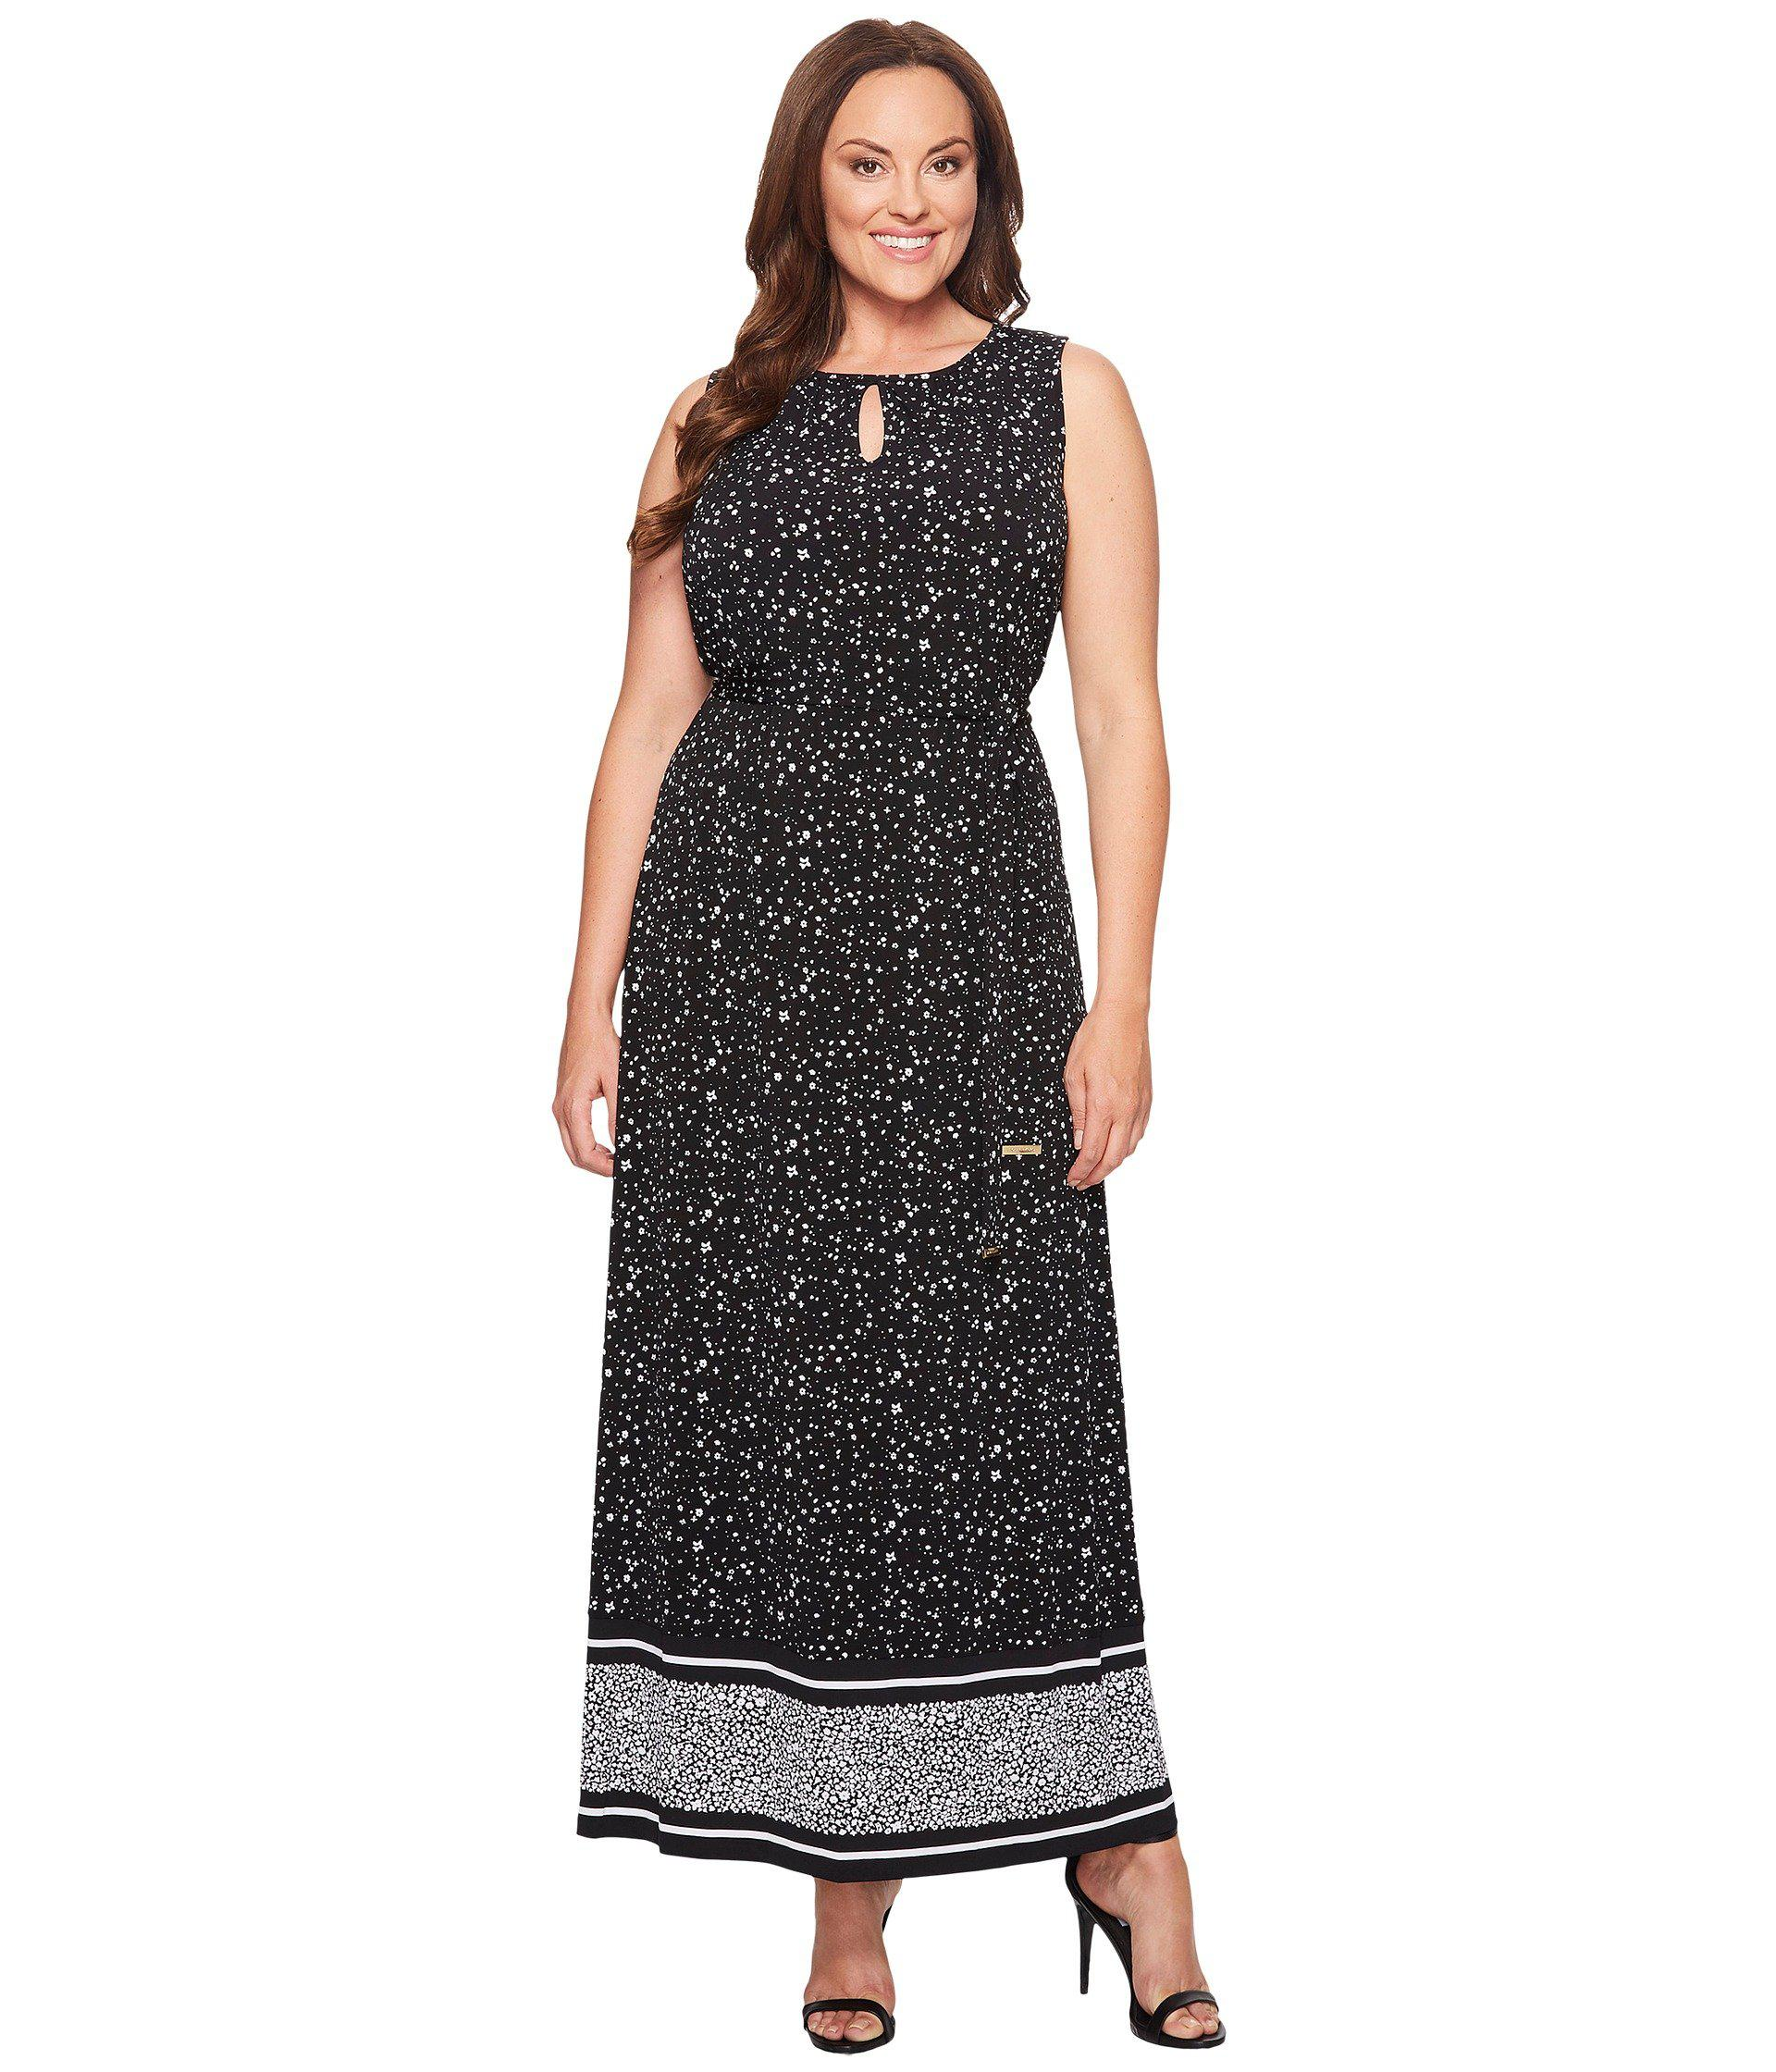 817a05c057b Lyst - MICHAEL Michael Kors Plus Size Nora Border Maxi Dress in Black